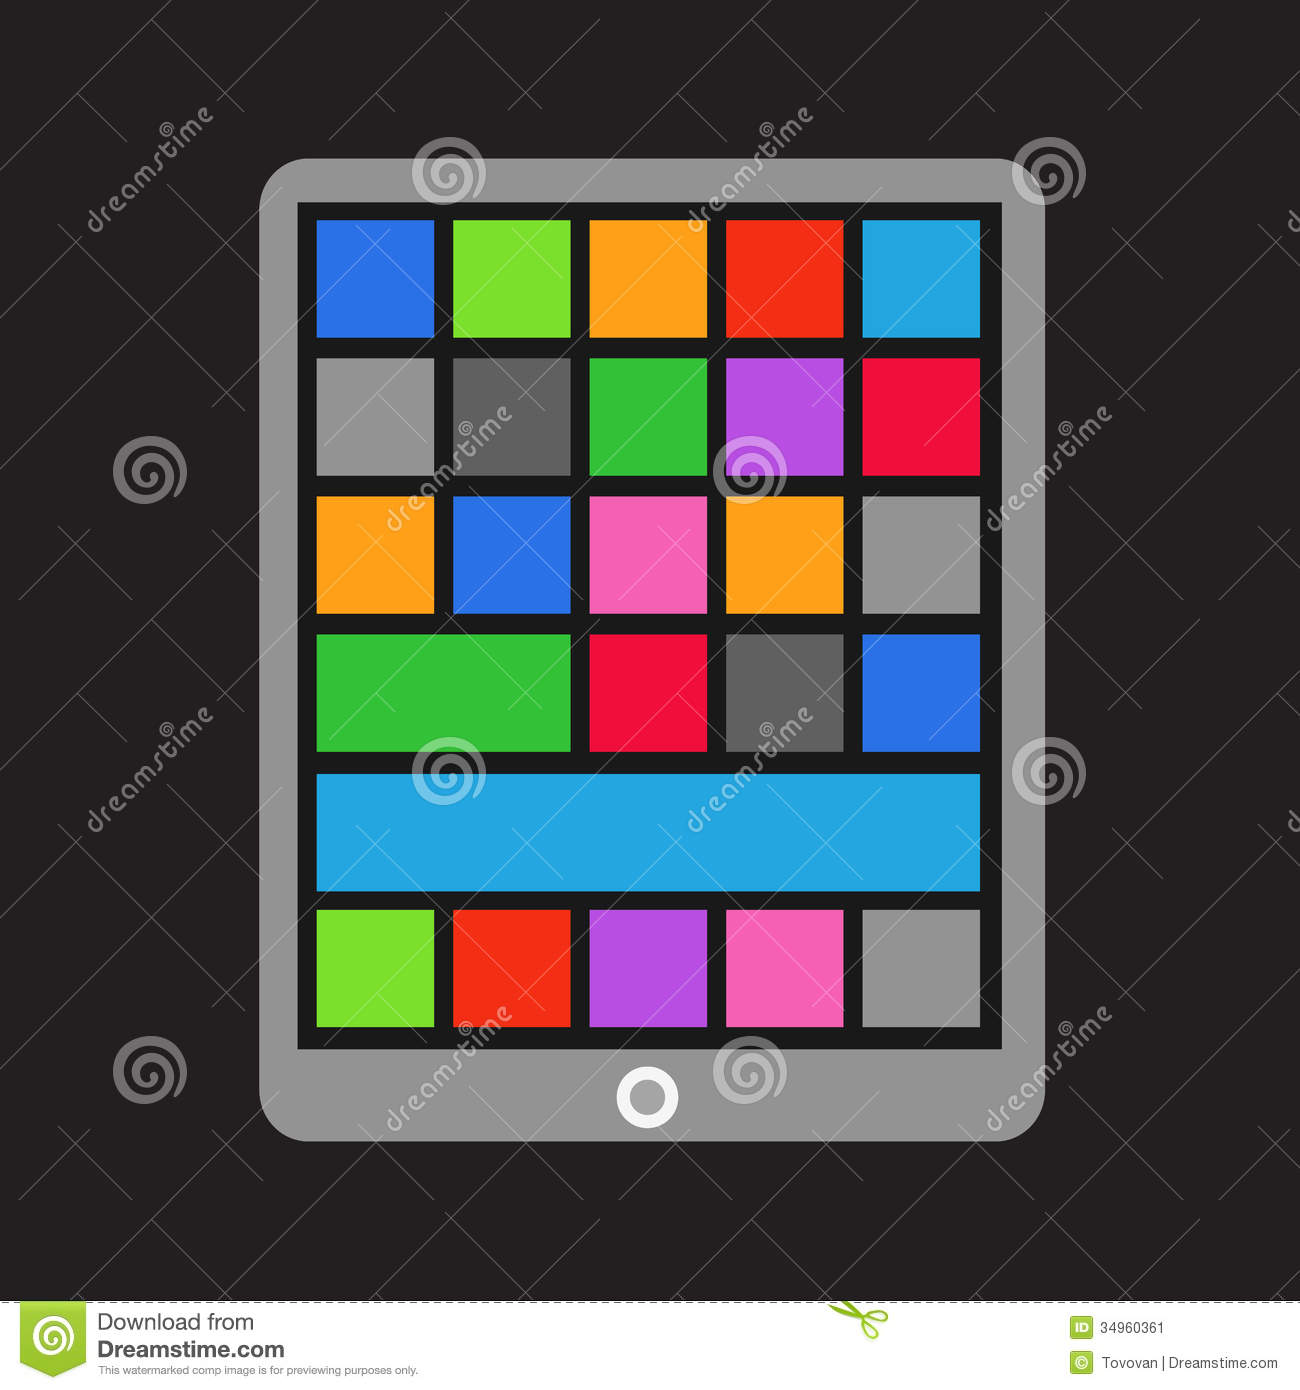 modern-tablet-gadget-abstract-color-tile-interface-template-34960361.jpg